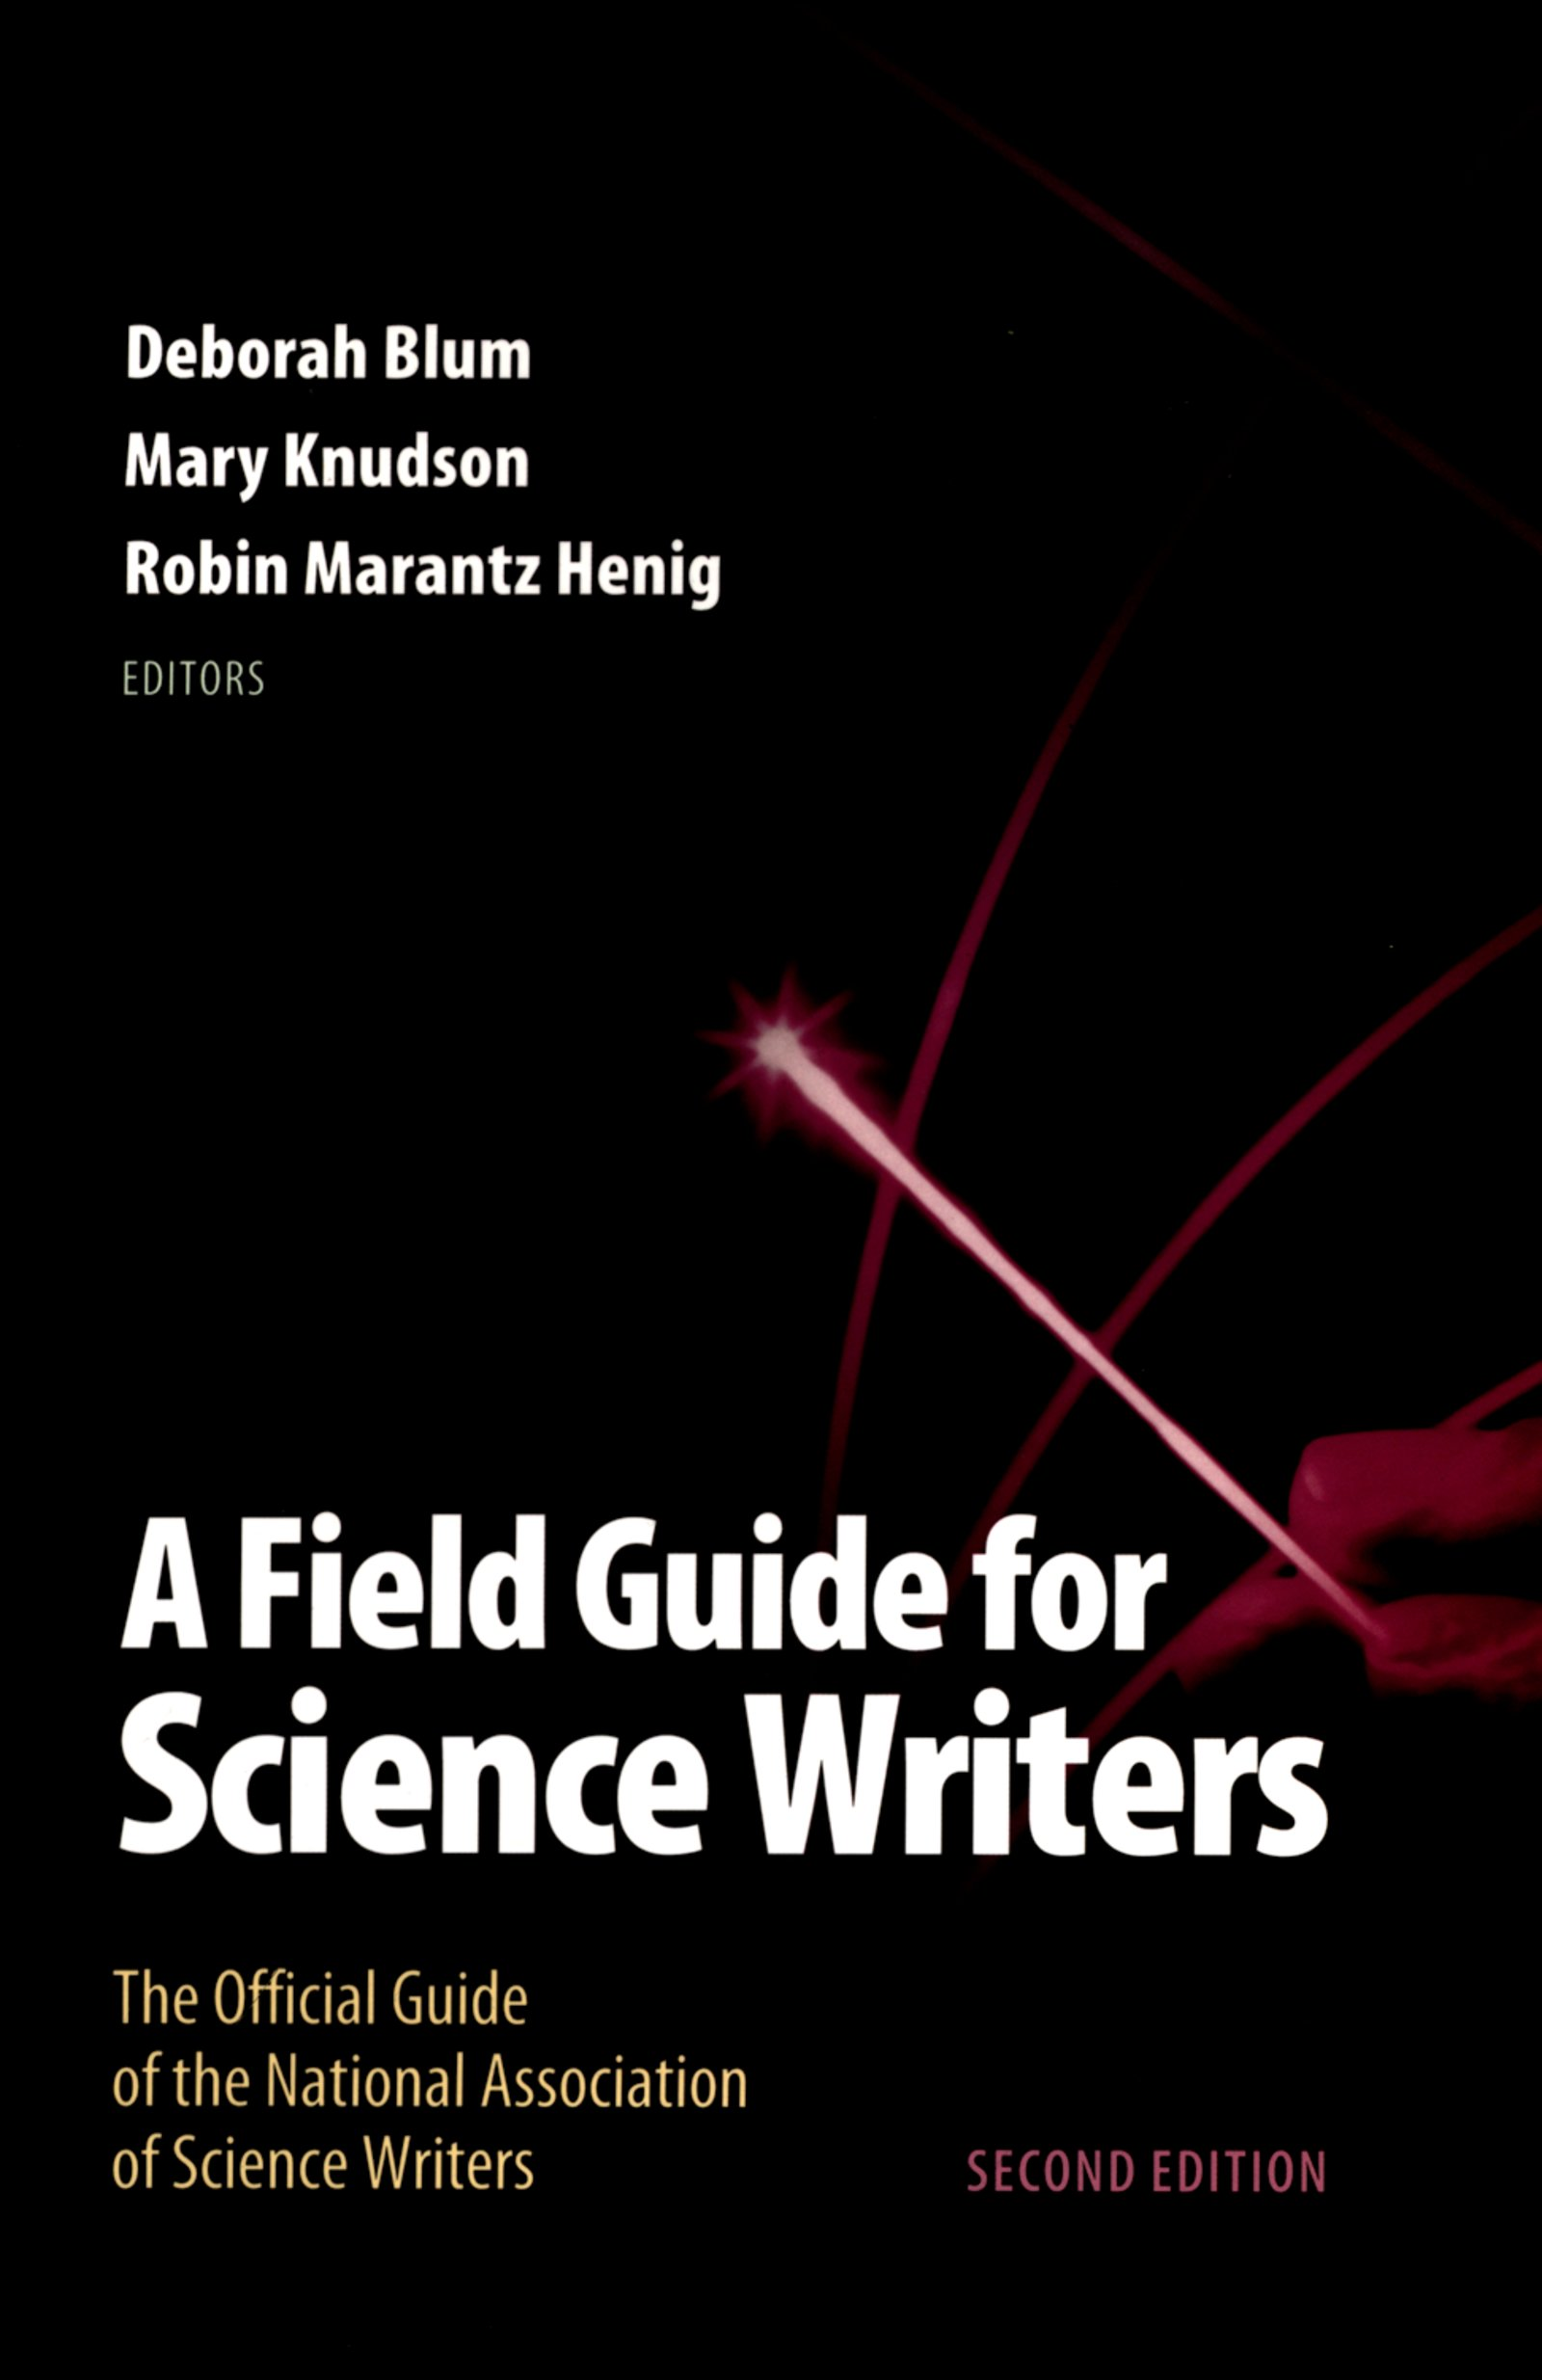 Download Ebook A Field Guide for Science Writers (2nd ed.) by Deborah Blum Pdf